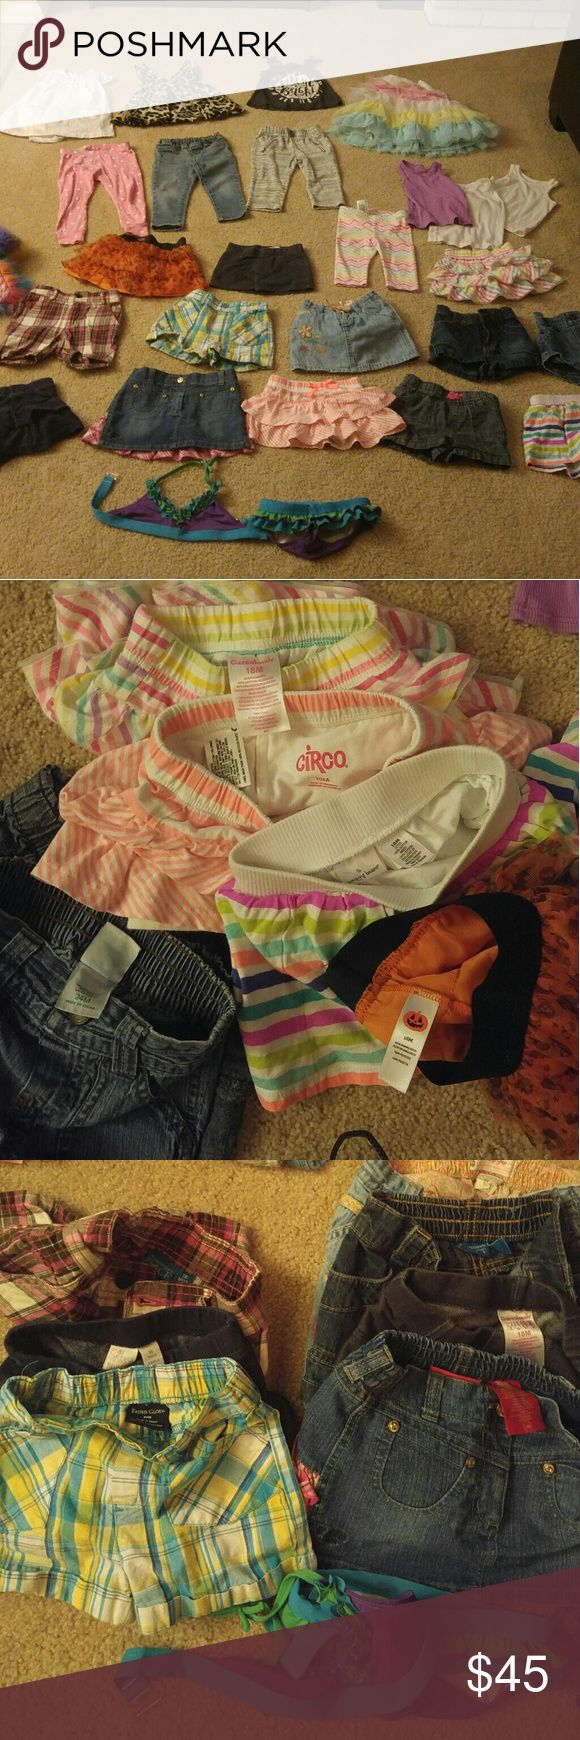 27 Piece Lot of Girls Clothes- a real STEAL! 2 plaid shorts, 4 Jean shorts, 3 Jean skirts, 3 skorts, 1 rainbow capri, 1 pair jeggings,1 jogger, 1 pj pant, 1 Halloween tutu, 3 wife beaters, 1 shine bright tank, 1 Easter Dress, 1 Aztec print body-suit dress, 1 leopard print dress/tunic, 1 winter hat and 1 bikini. Individual pics available upon request. All in great shape! Some never worn. Pet free, smoke free! Other